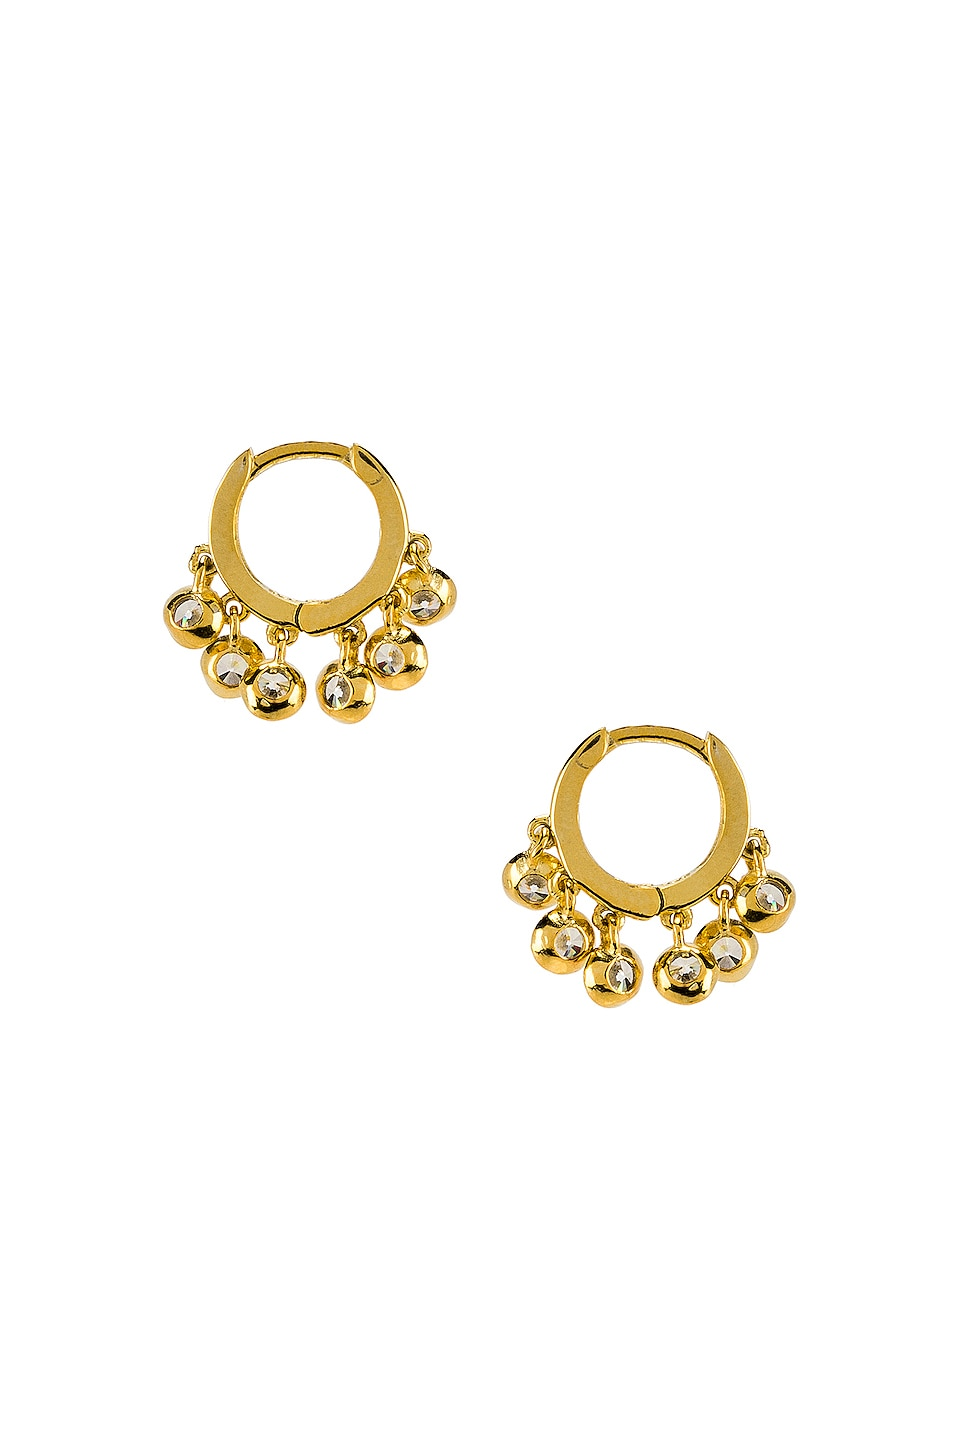 The M Jewelers NY Tiny Pave Huggie Earrings in Gold